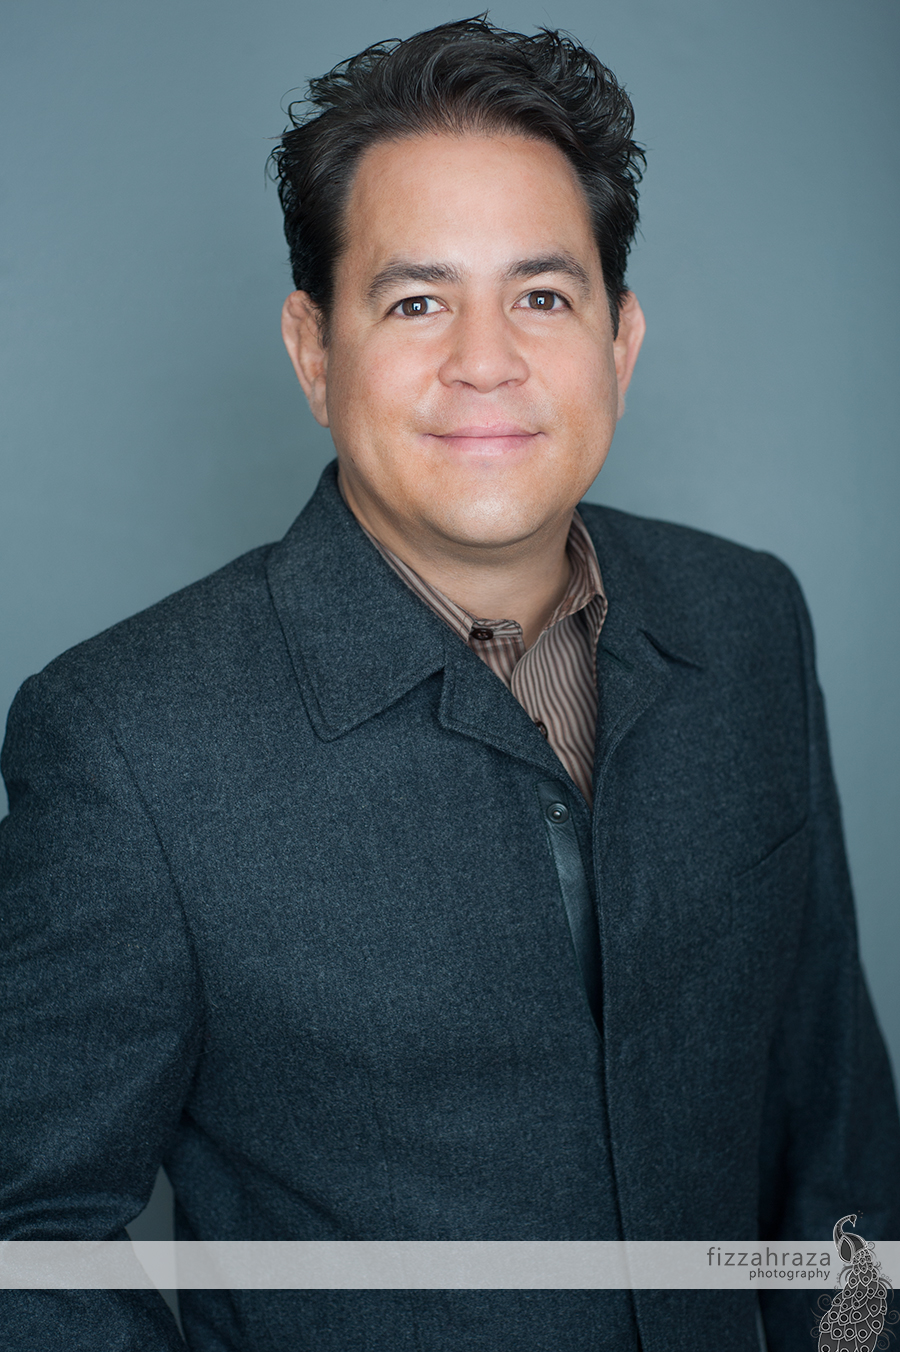 corporate, business, headshot, portrait, men, male, south san francisco, linkage biosciences